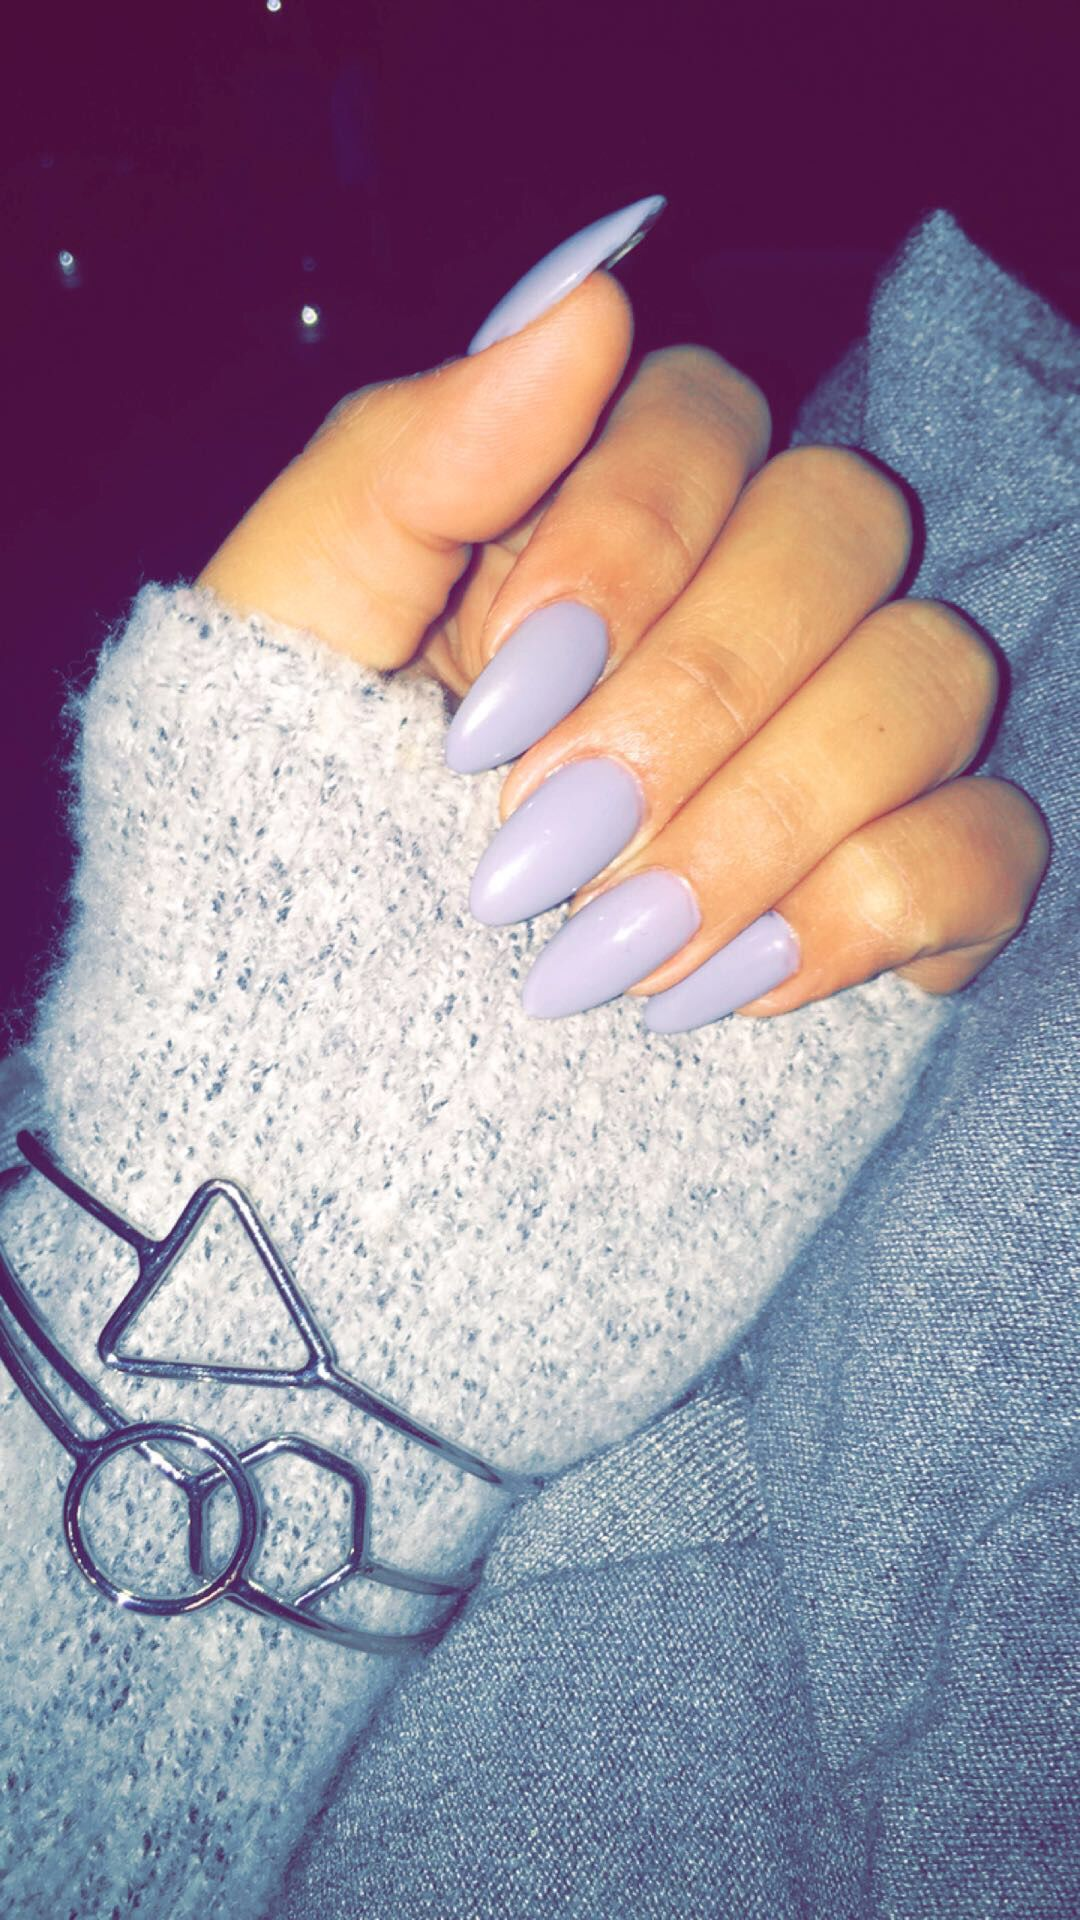 Just got my nails done. I chose a bluey grey Essie nail color ...